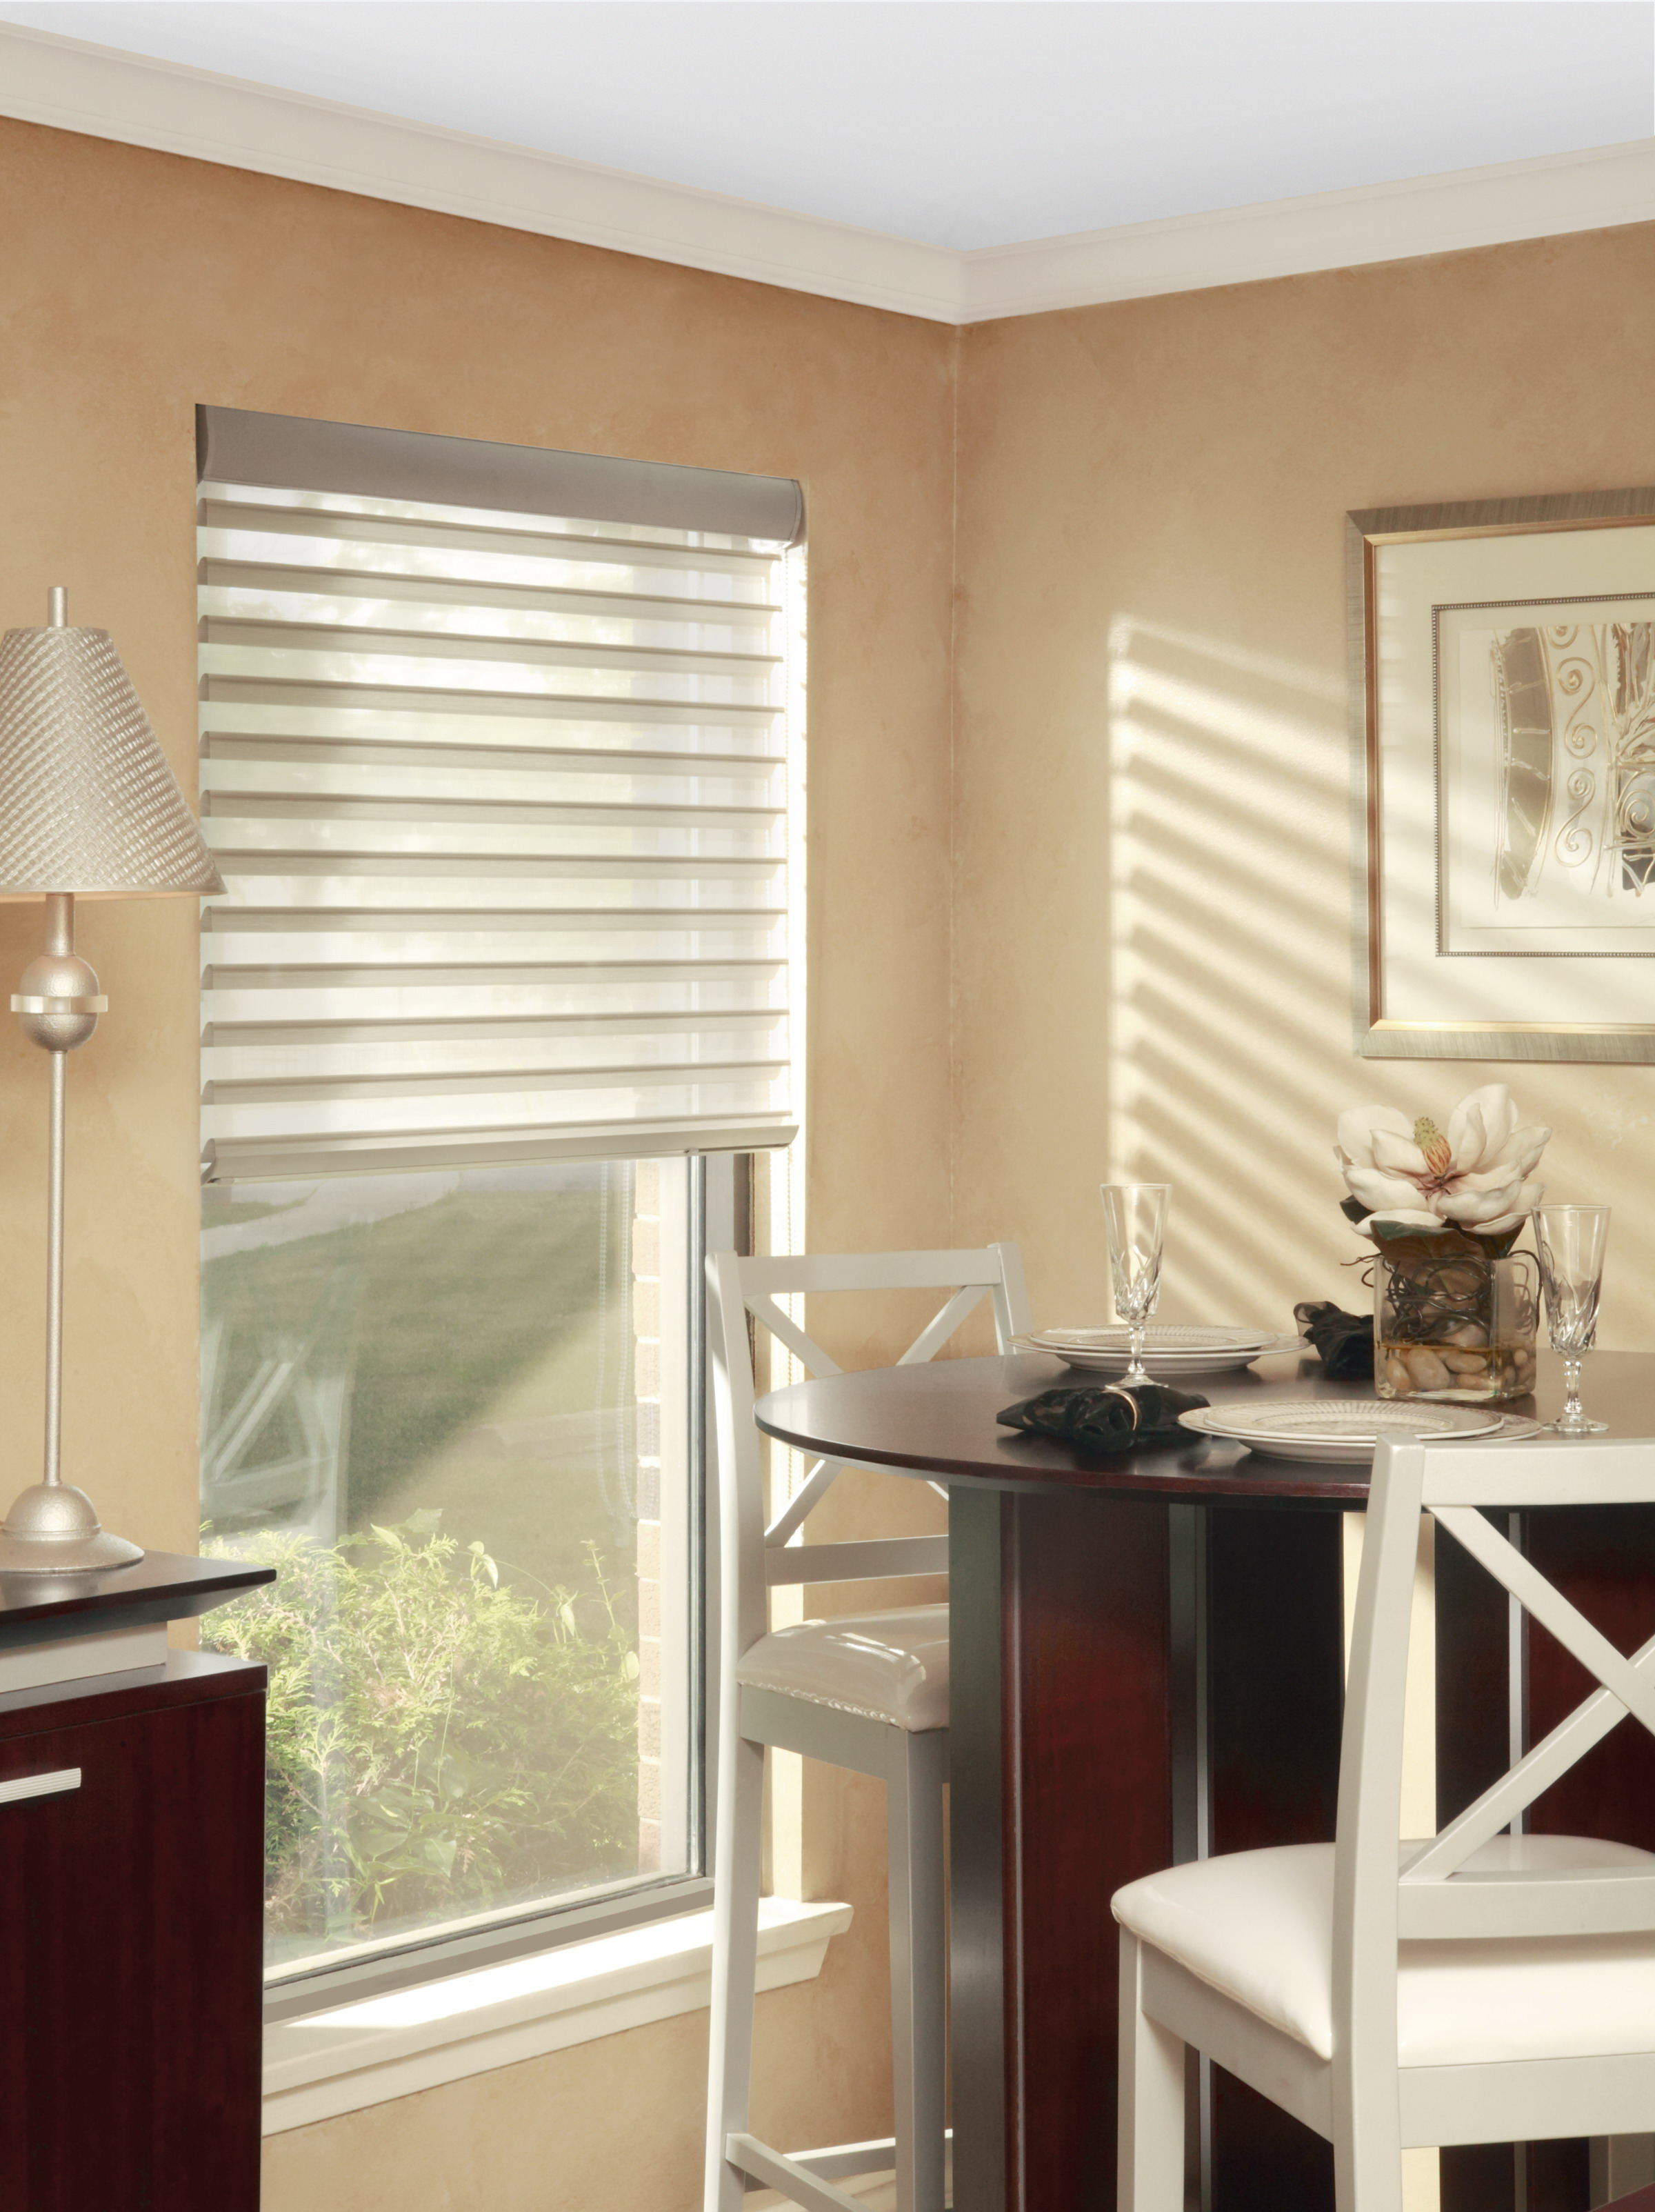 blinds decorative of shades fascias for roller window manufacturers fascia fabric